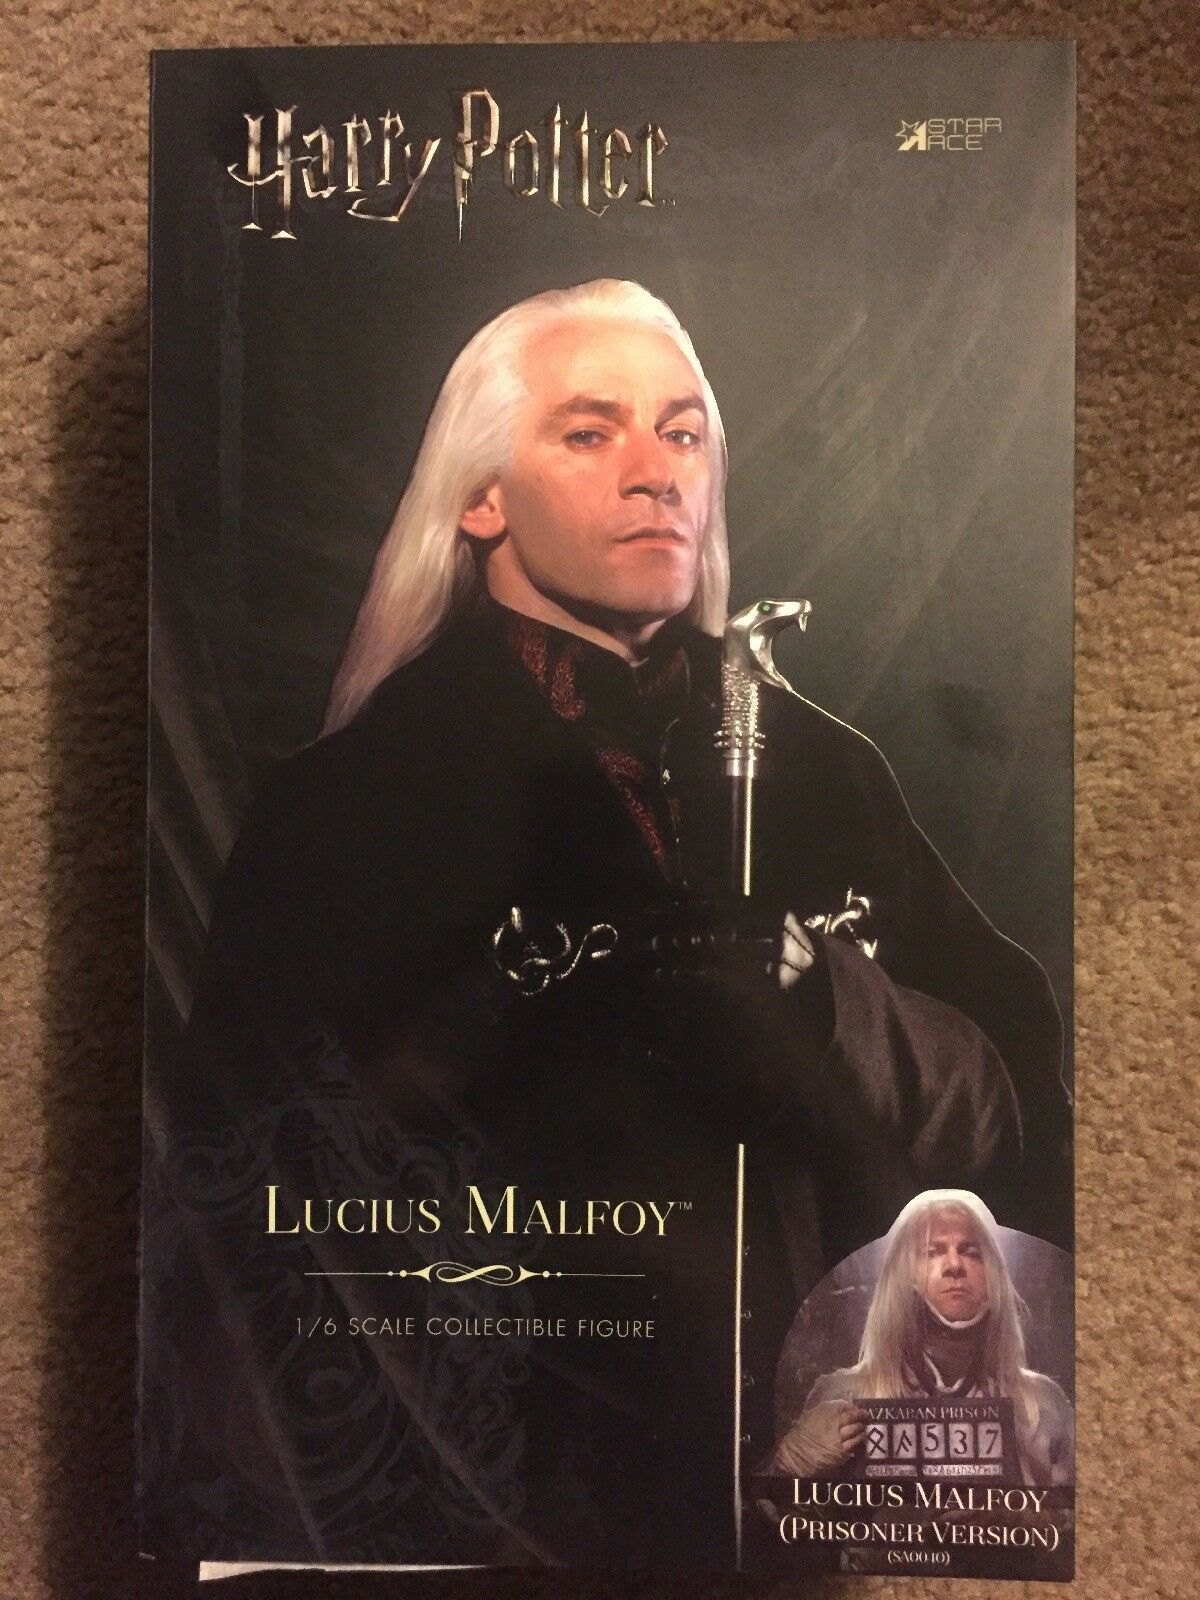 New Star Ace Harry Potter 1 6 Scale Lucius Malfoy Prisoner Version Figure